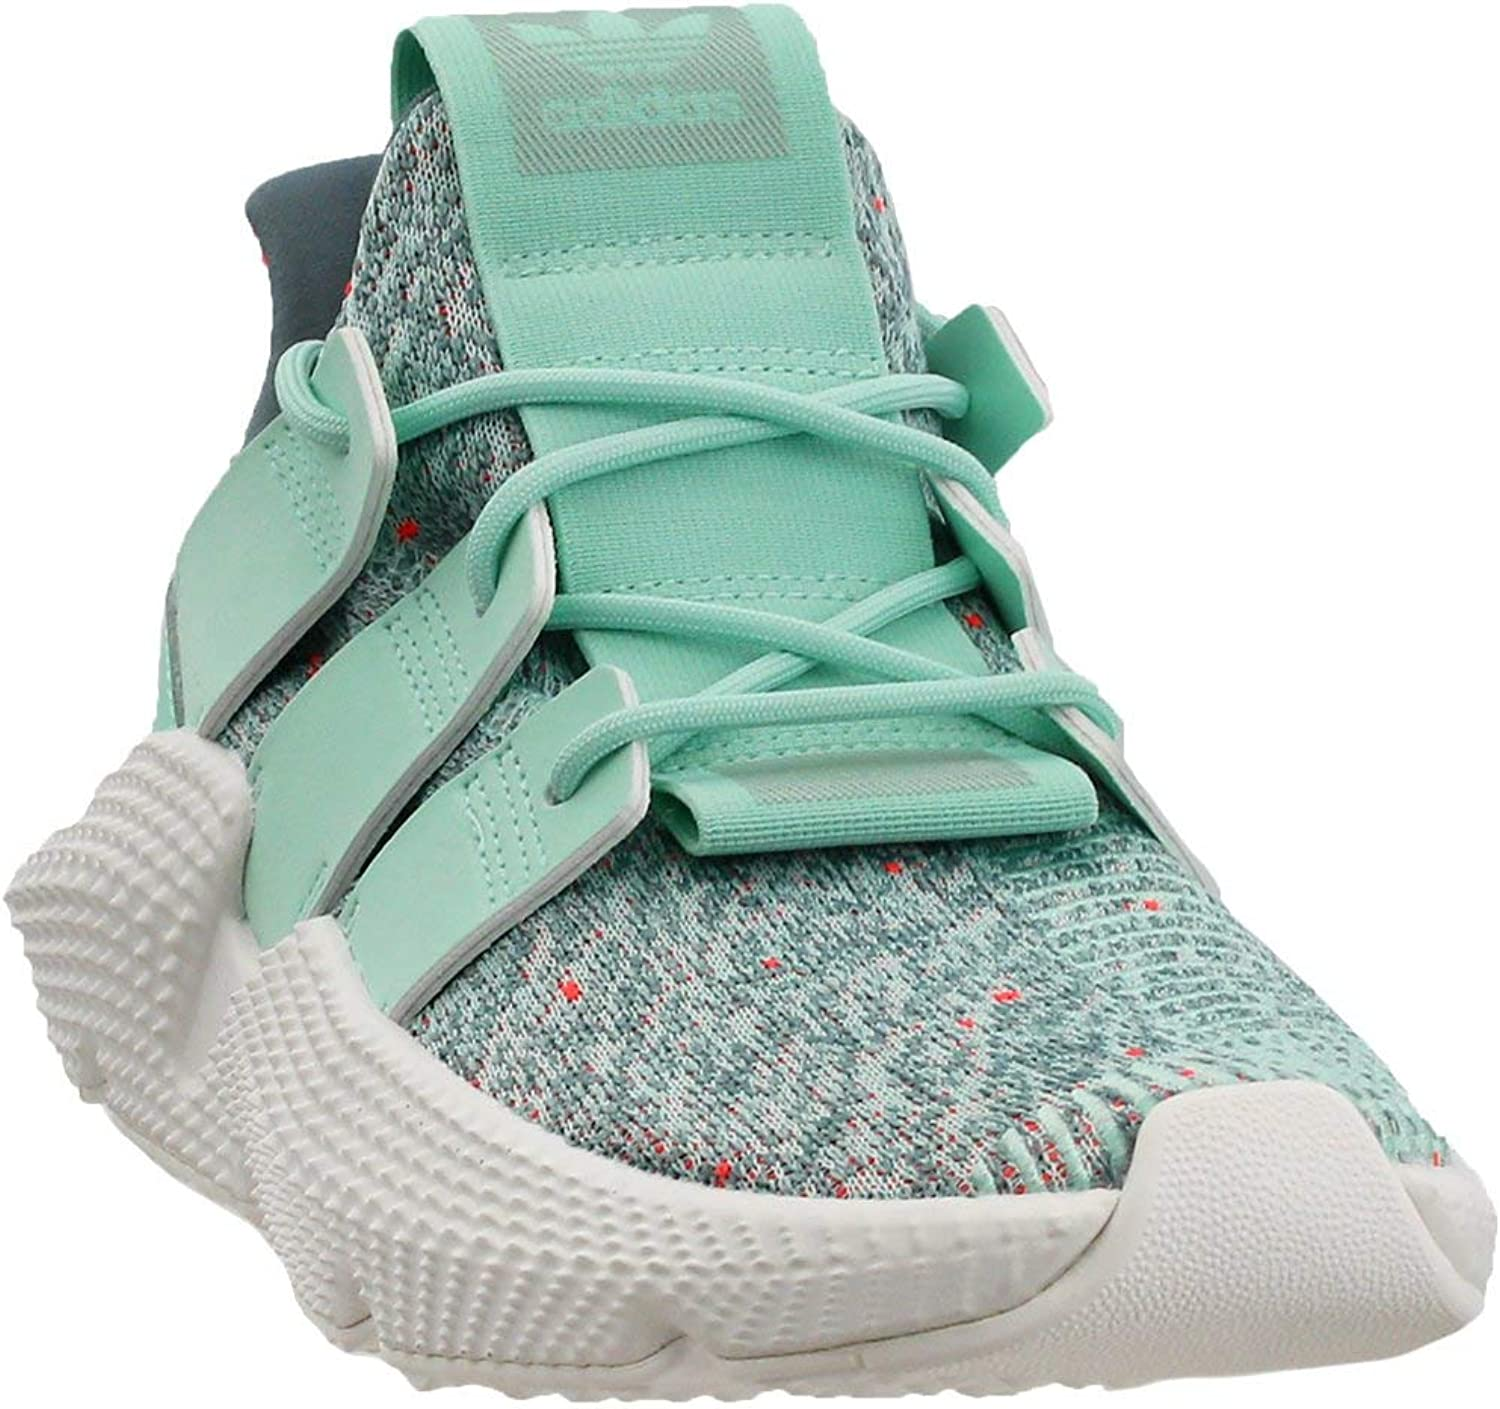 Adidas Prophere Womens in Clear Mint Solar Red, 8.5